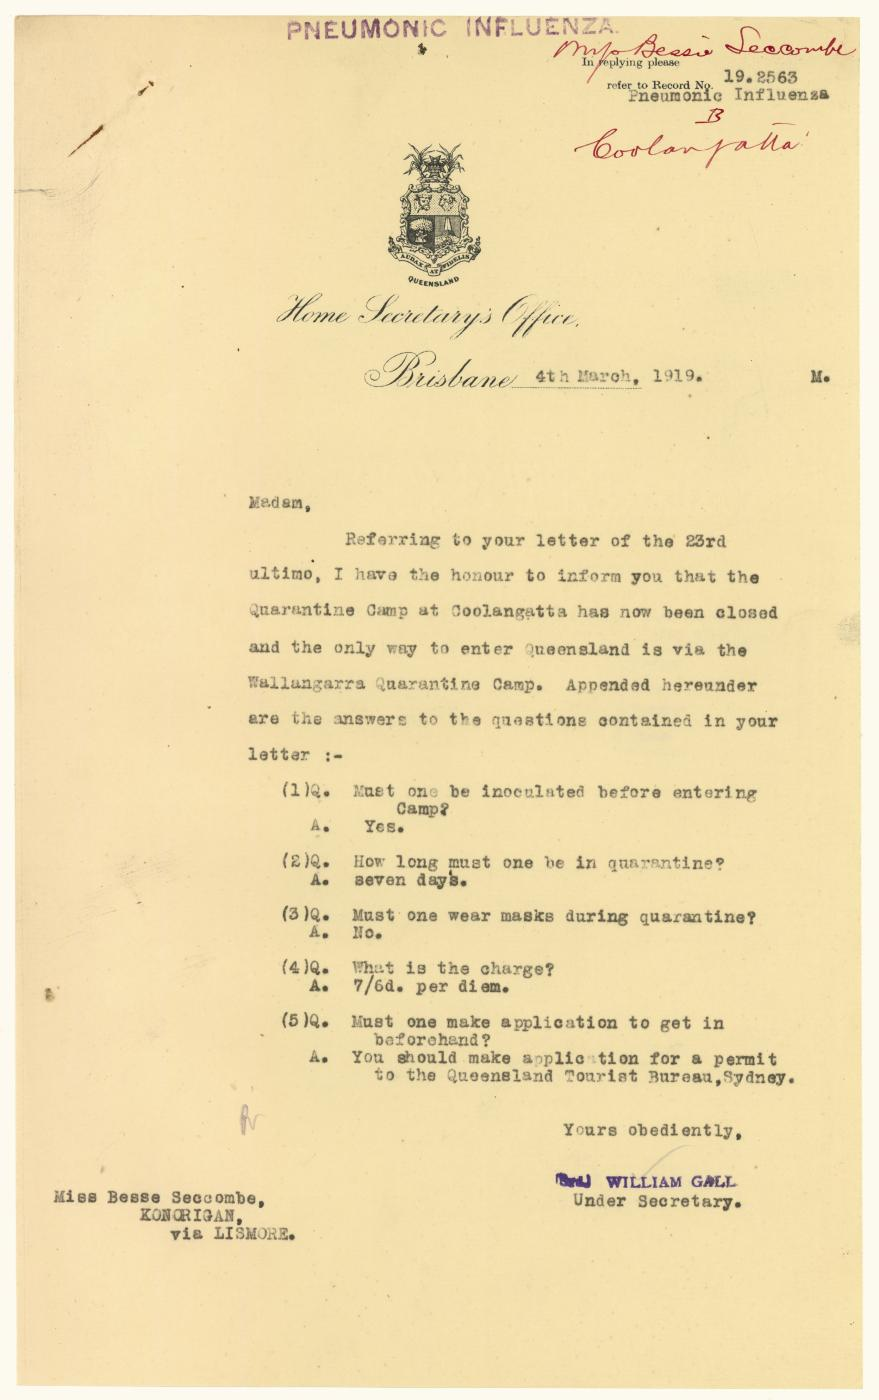 QSA DID 2799: Letter from the Home Secretary's Office to Miss Besse Seccombe from Konorigan via Lismore, regarding the closure of the quarantine camp in Coolangatta and the procedures for entry to Queensland via the quarantine camp in Wallangarra, dated 4 March 1919